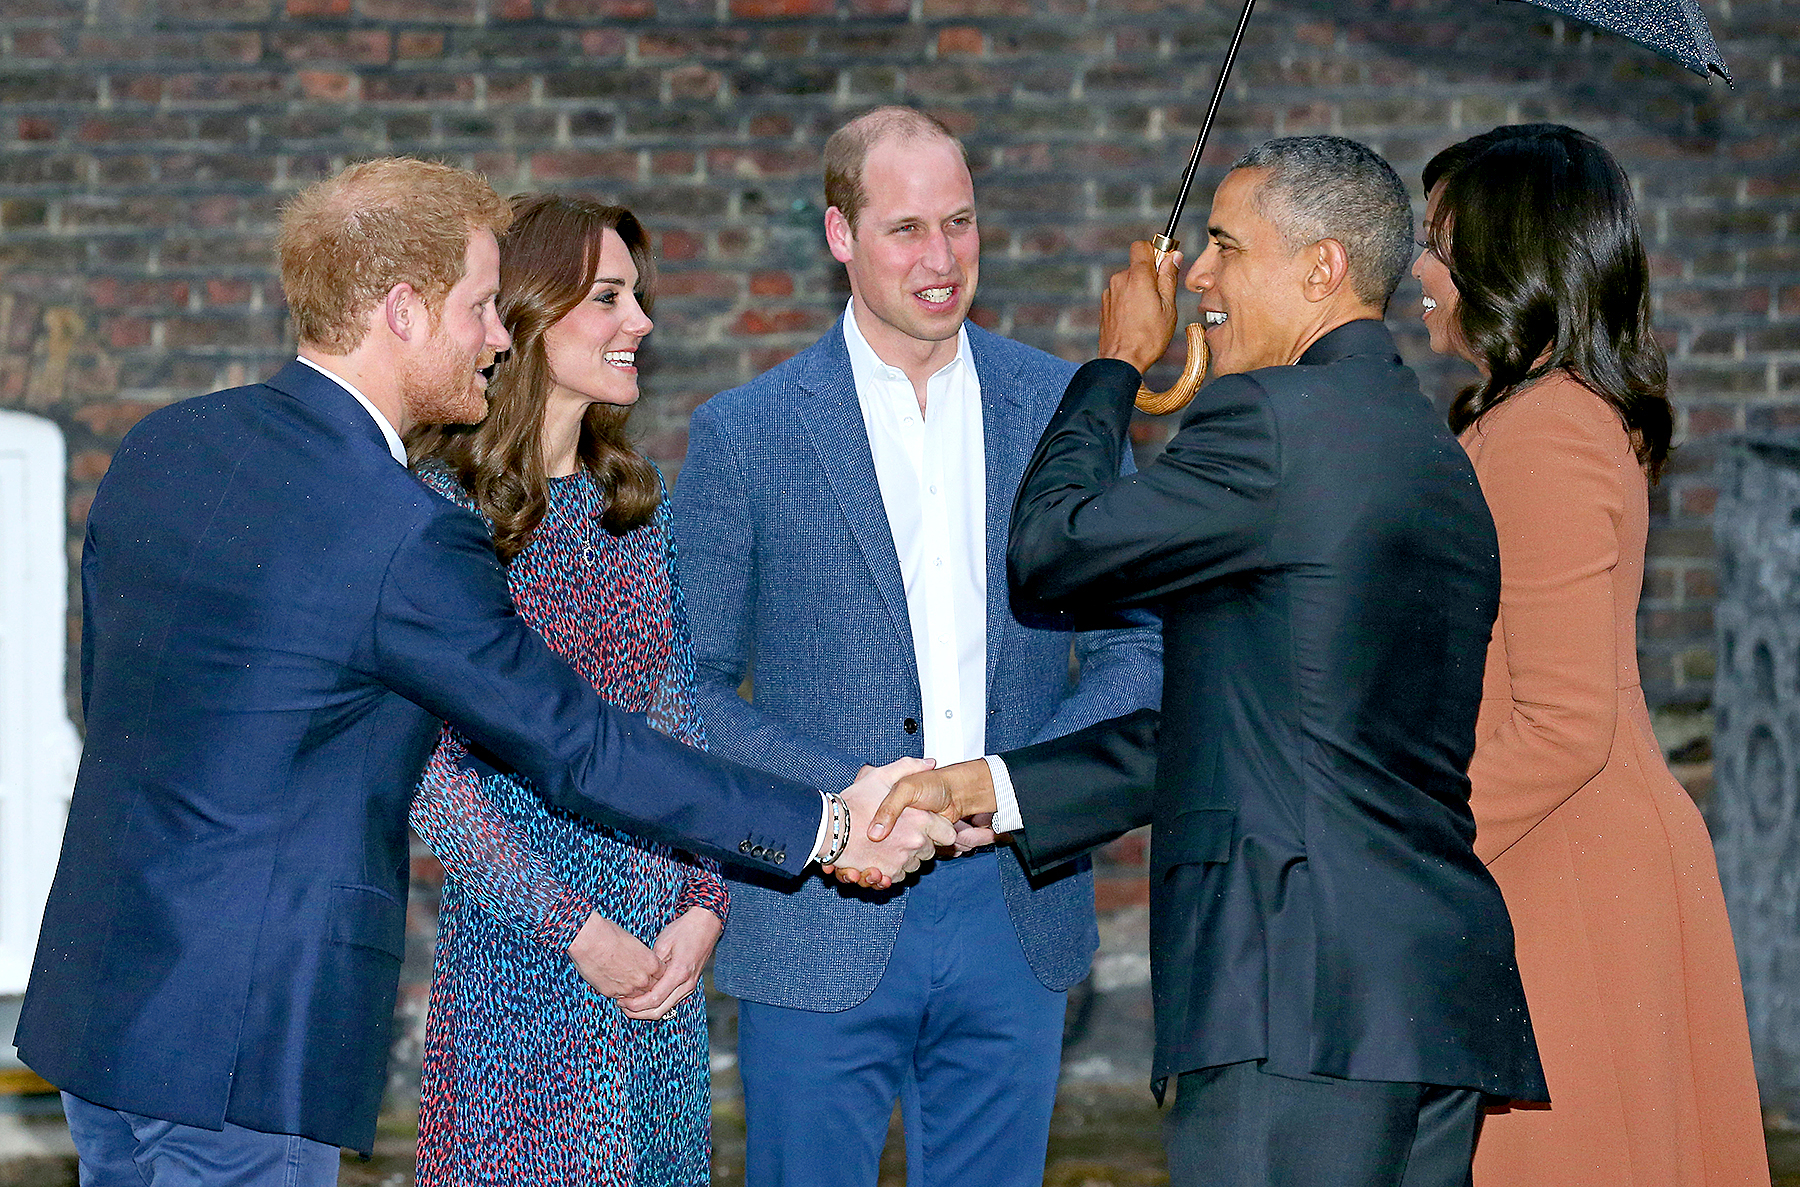 US President Barack Obama shakes hands with Britain's Prince Harry as Prince William, Duke of Cambridge and Catherine Duchess of Cambridge greet the US president and US First Lady Michelle Obama in London, April 22, 2016.